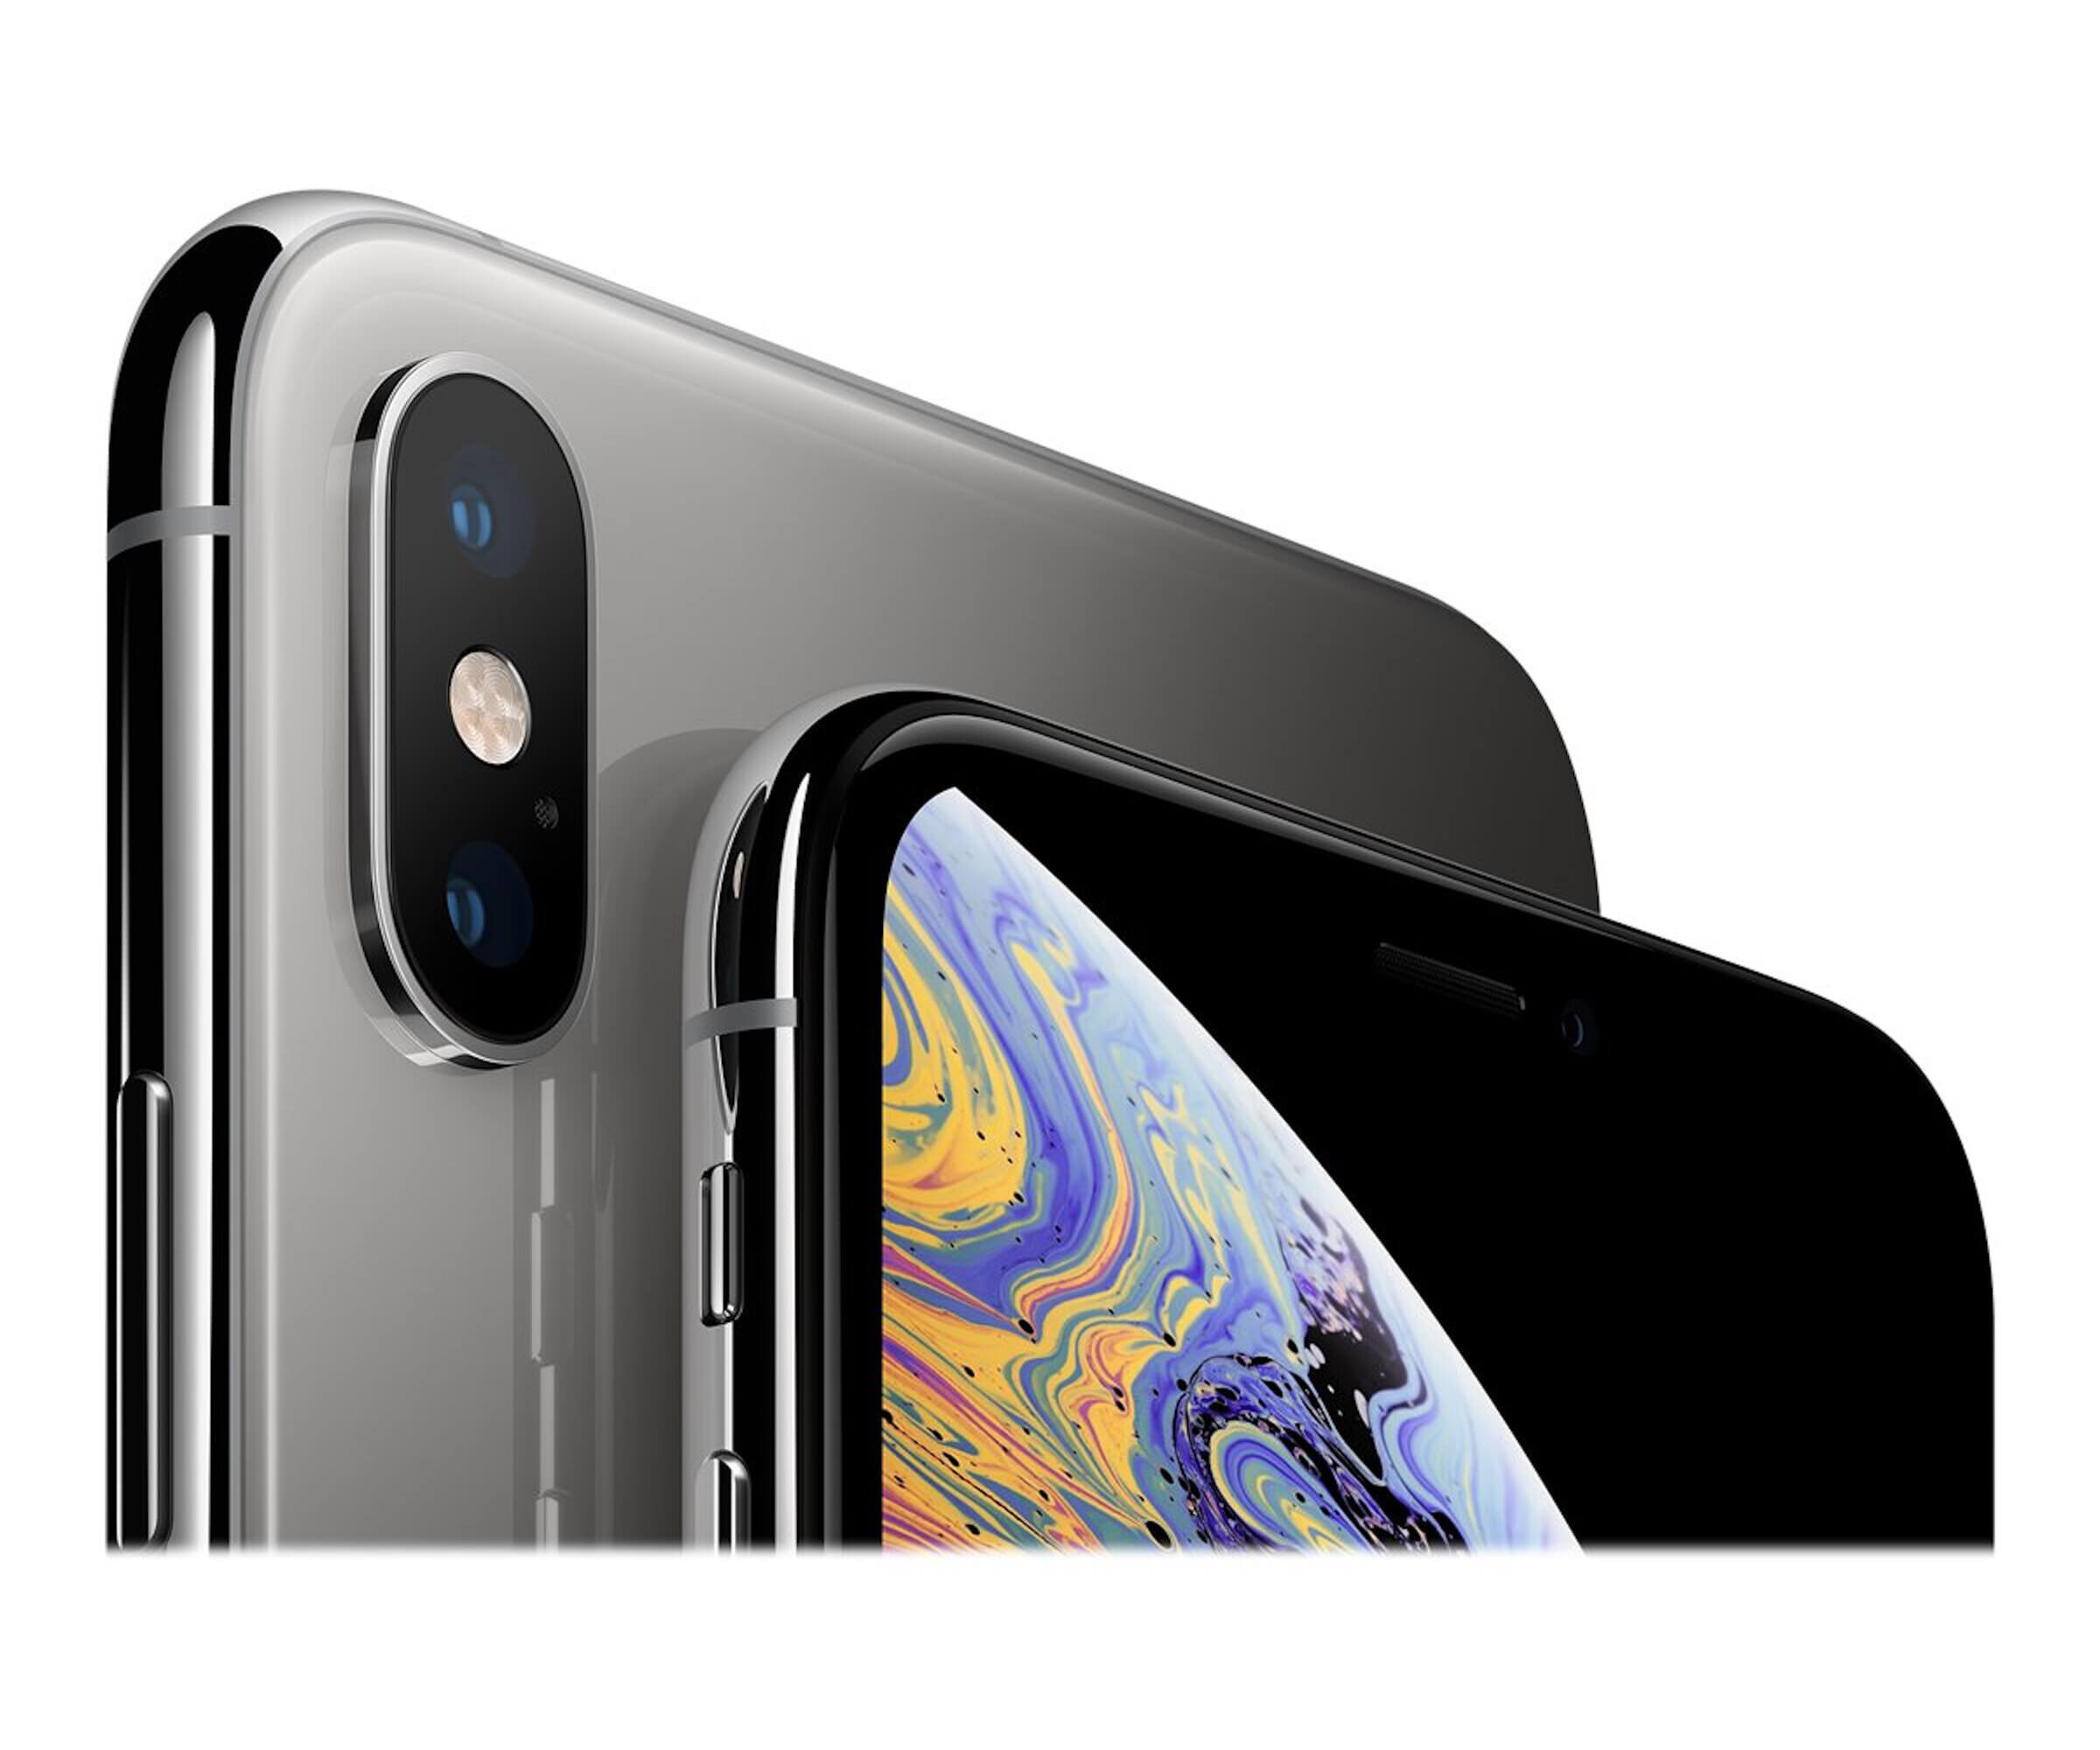 Apple iPhone XS Max - Smartphone - Dual-SIM - 4G Gigabit Class LTE - 512 GB - GSM - 6.5